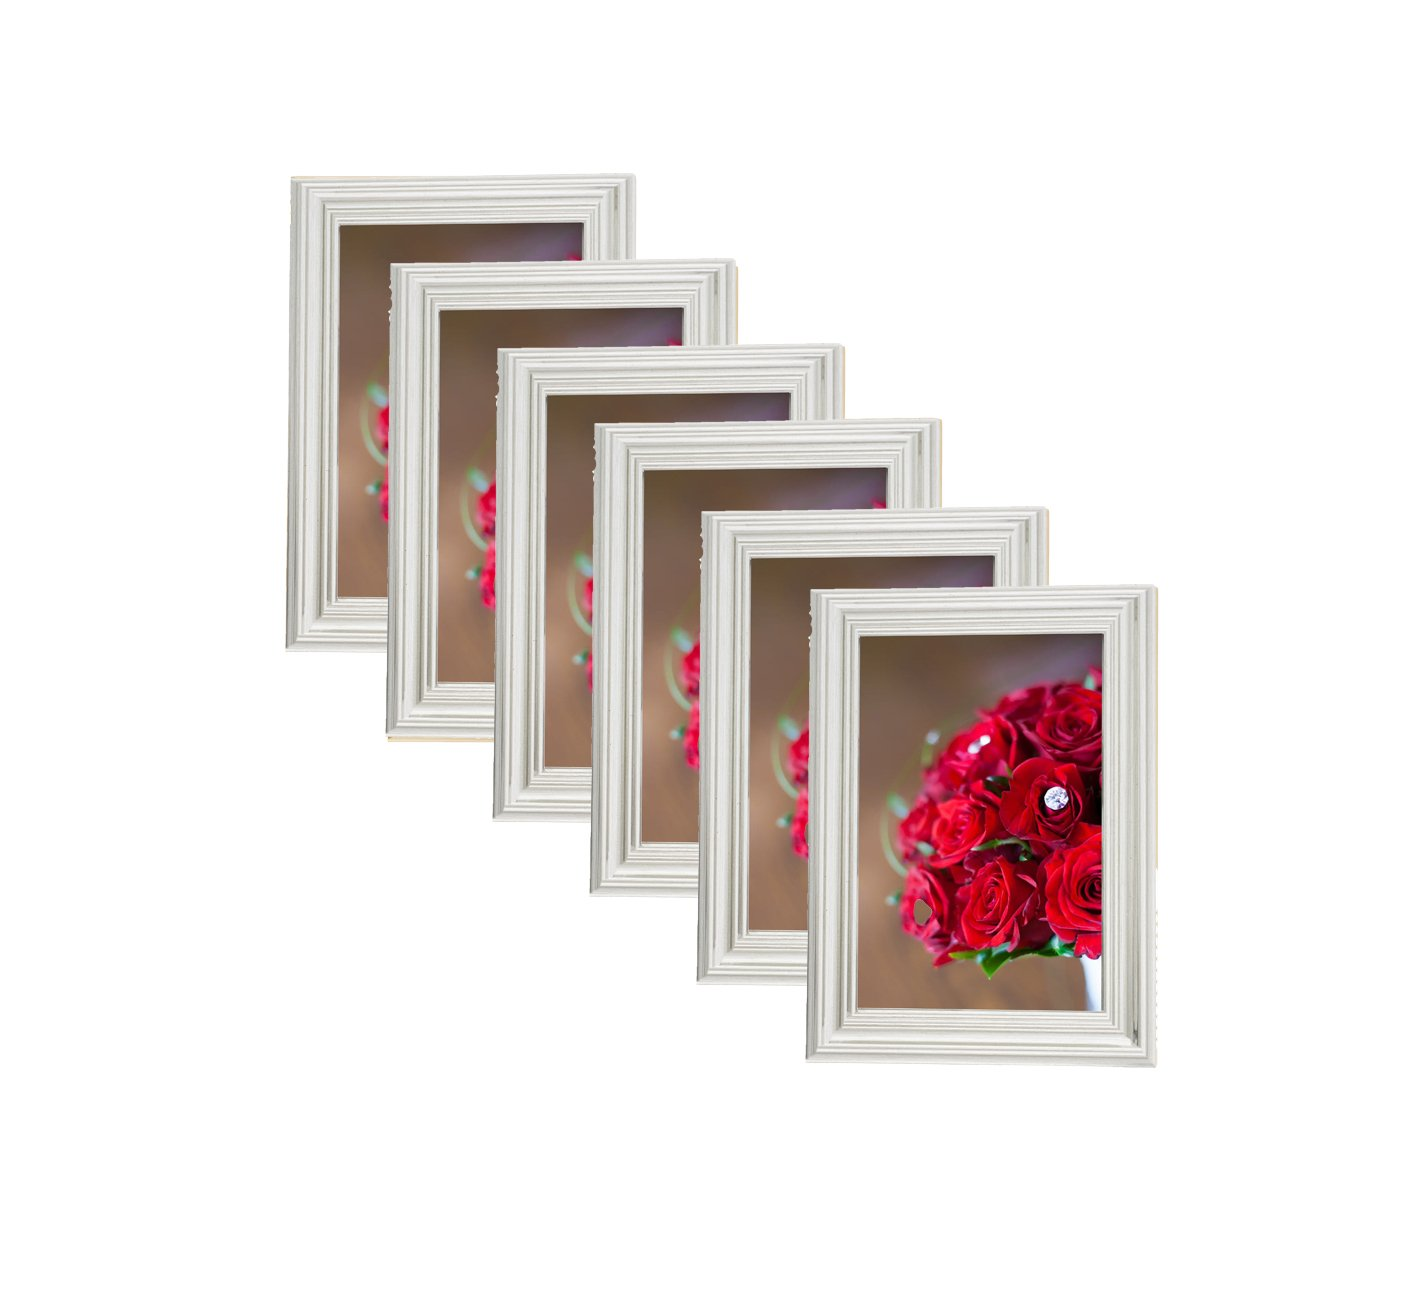 Plated Black Picture Frames (6 pc) Display with Photo Glass Front, Easel Back, Hanging Clip (Set of 6, 4x6) Lambert Frame 1637